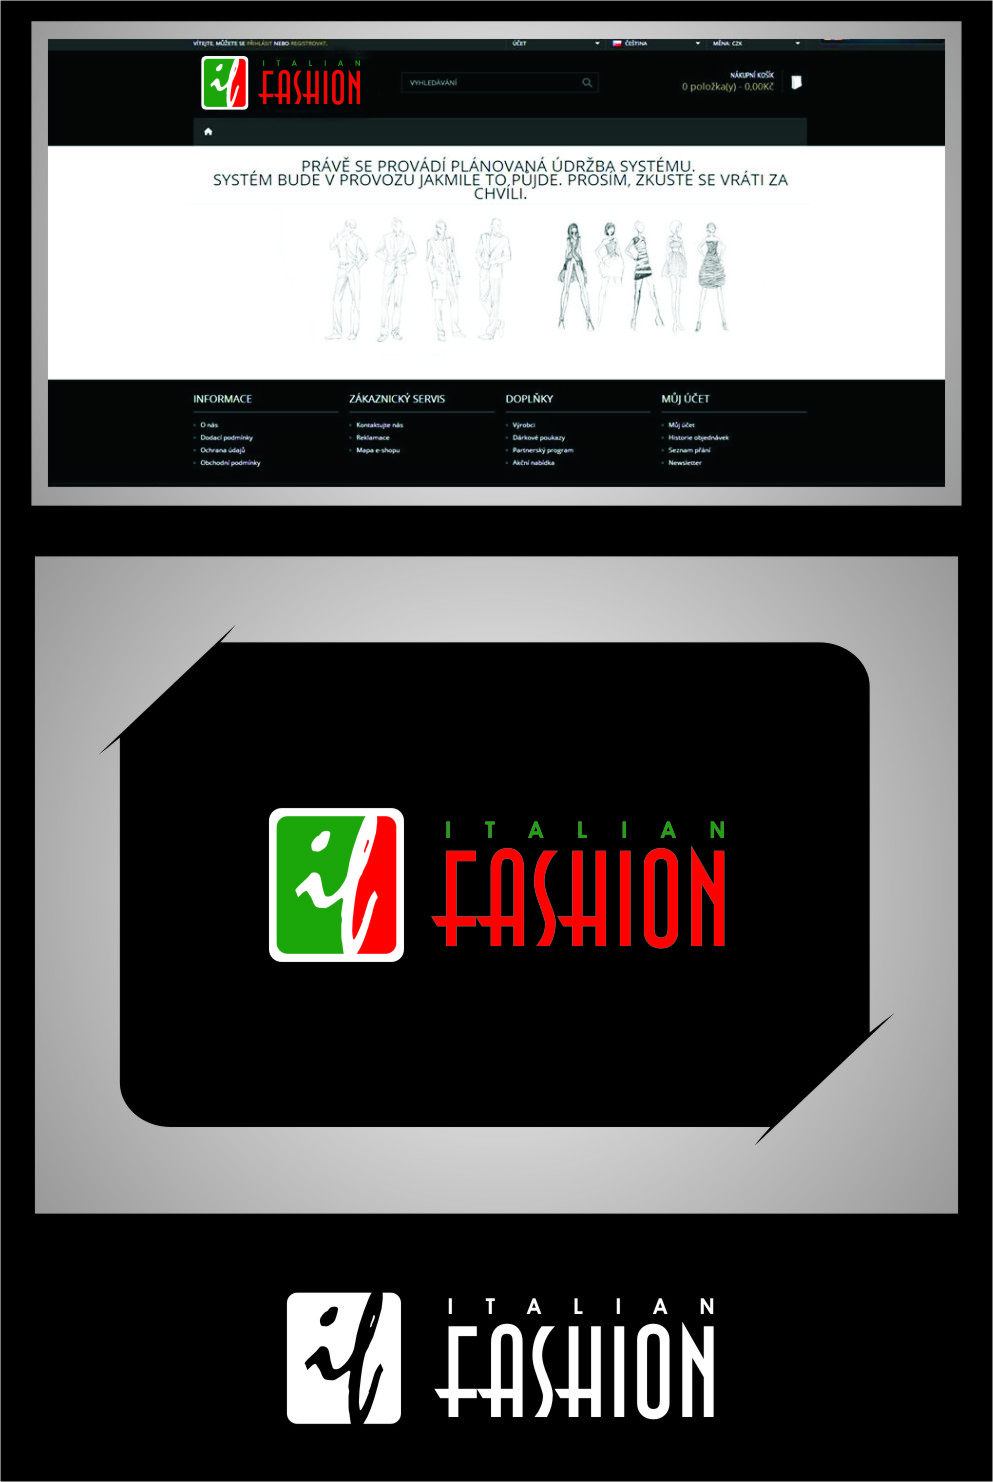 Logo Design by Ngepet_art - Entry No. 98 in the Logo Design Contest Logo for Web Page ItalianFashion.cz.